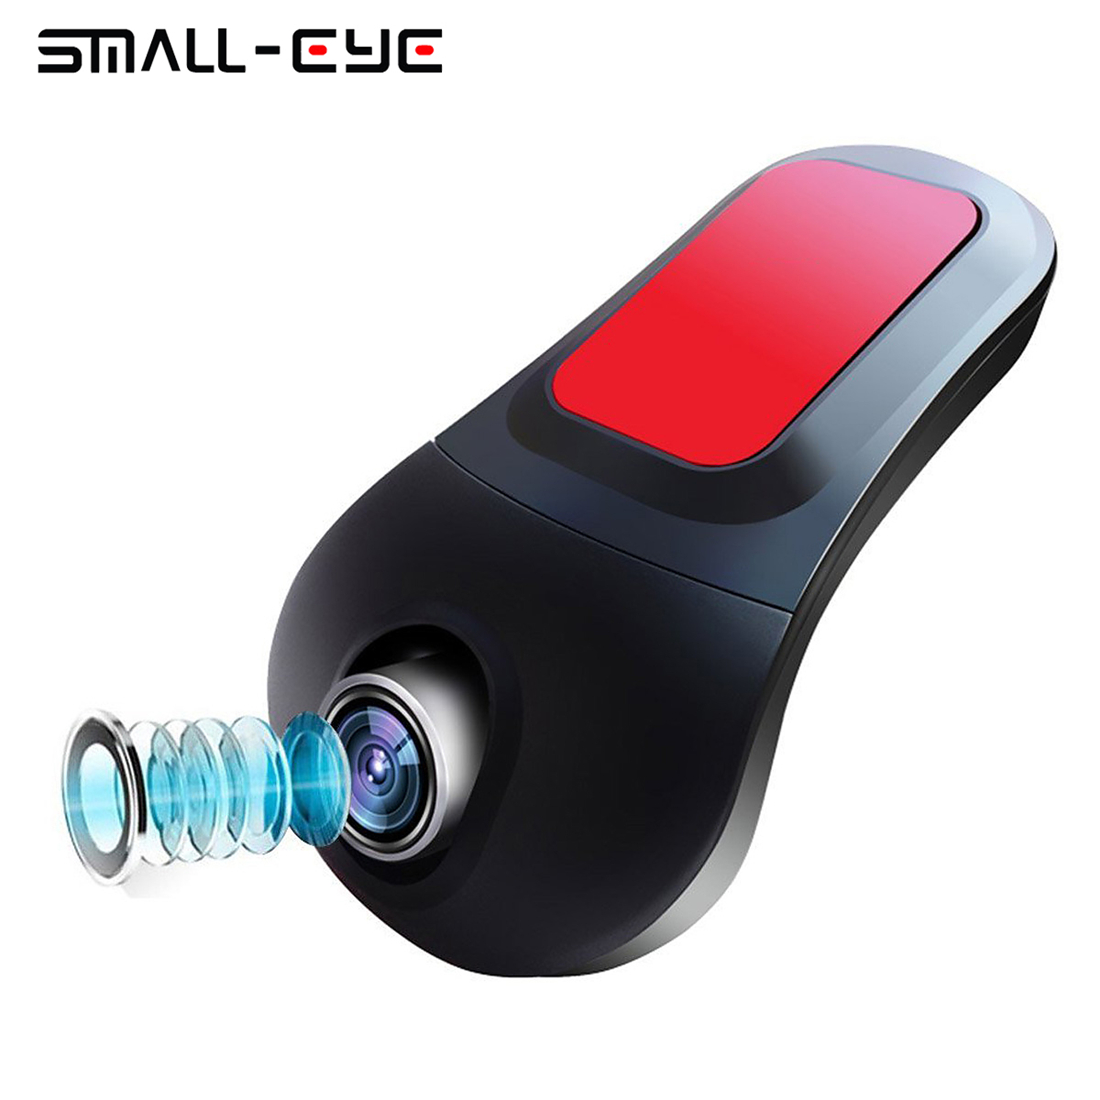 SMALL-EYE Car DVR Registrator Dash Camera Cam Digital Video Recorder Camcorder 1080P Night Vision Novatek 96655 IMX 322 WiFi